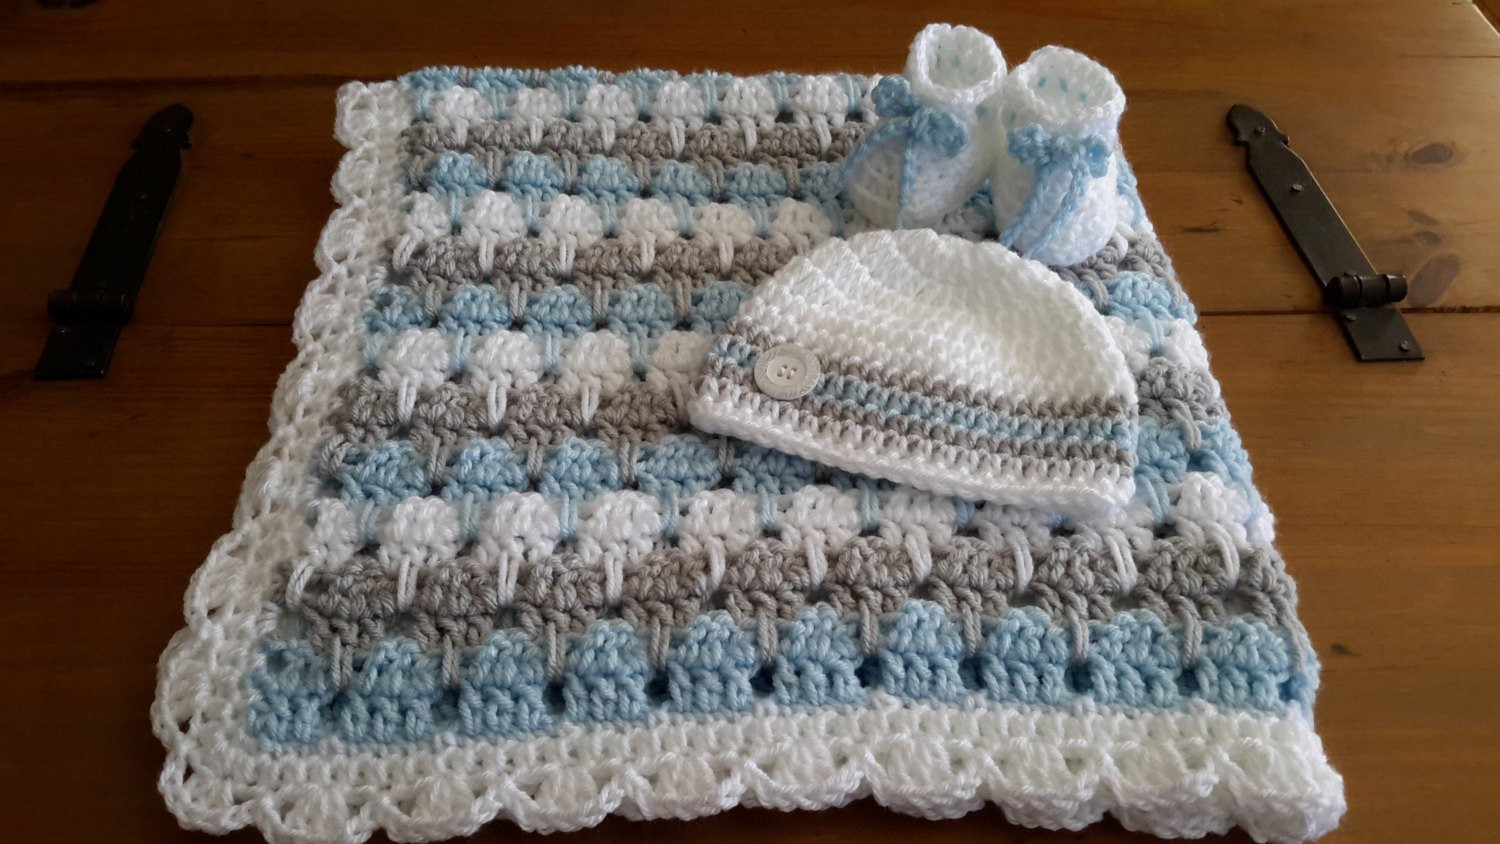 Baby Boy Crochet Blanket Patterns Lovely Baby Boy Blanket Crochet Stripe Crochet Blanket Afghan Of Baby Boy Crochet Blanket Patterns Elegant Fiber Flux Beautiful Blankets 30 Free Crochet Blanket